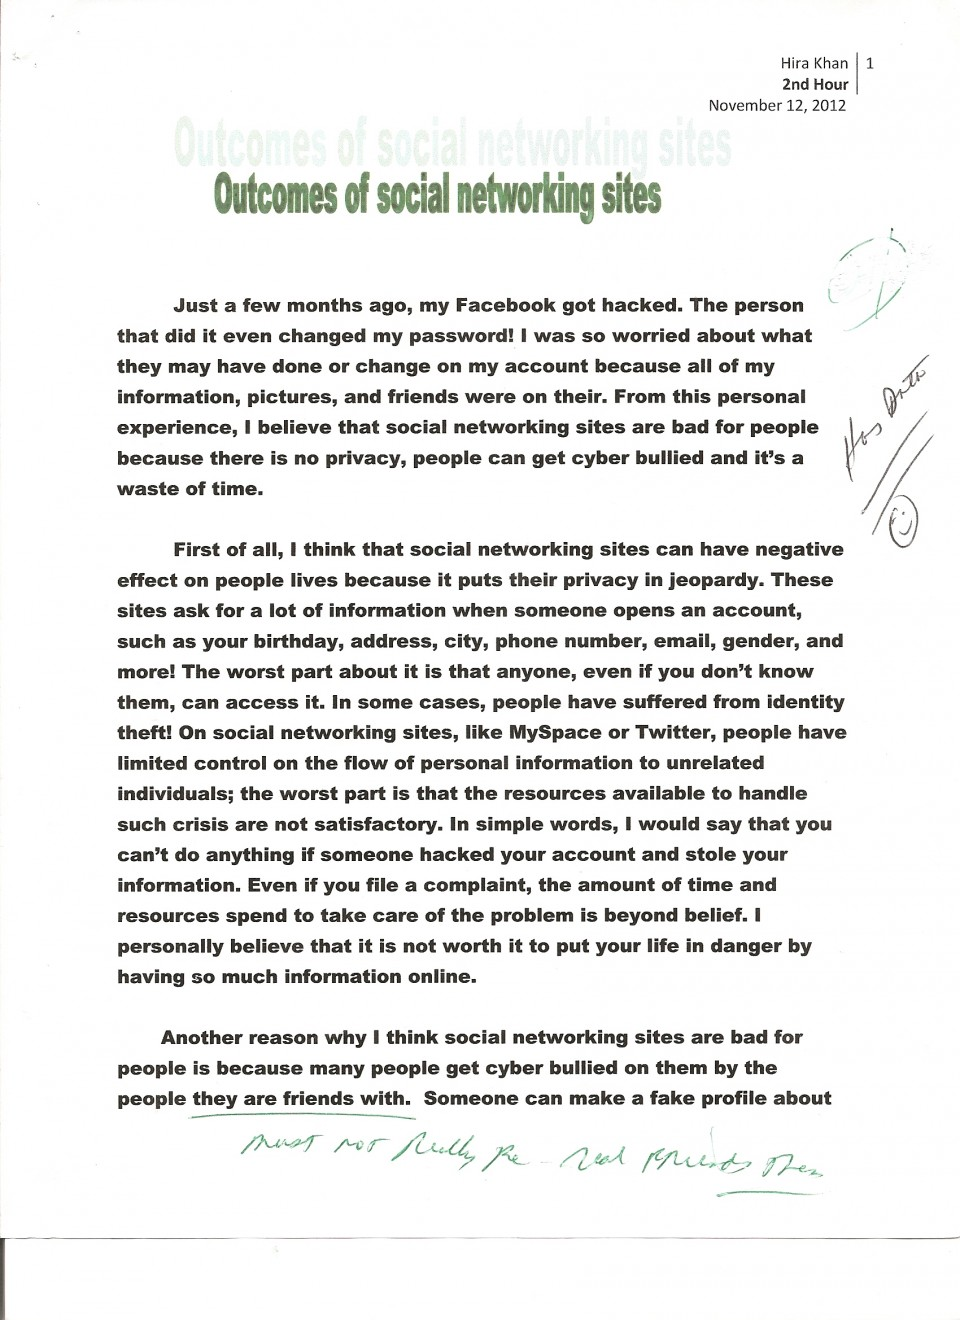 007 Essay Example Social Networking 1 Opinion About Fast Unbelievable Food Restaurants 960